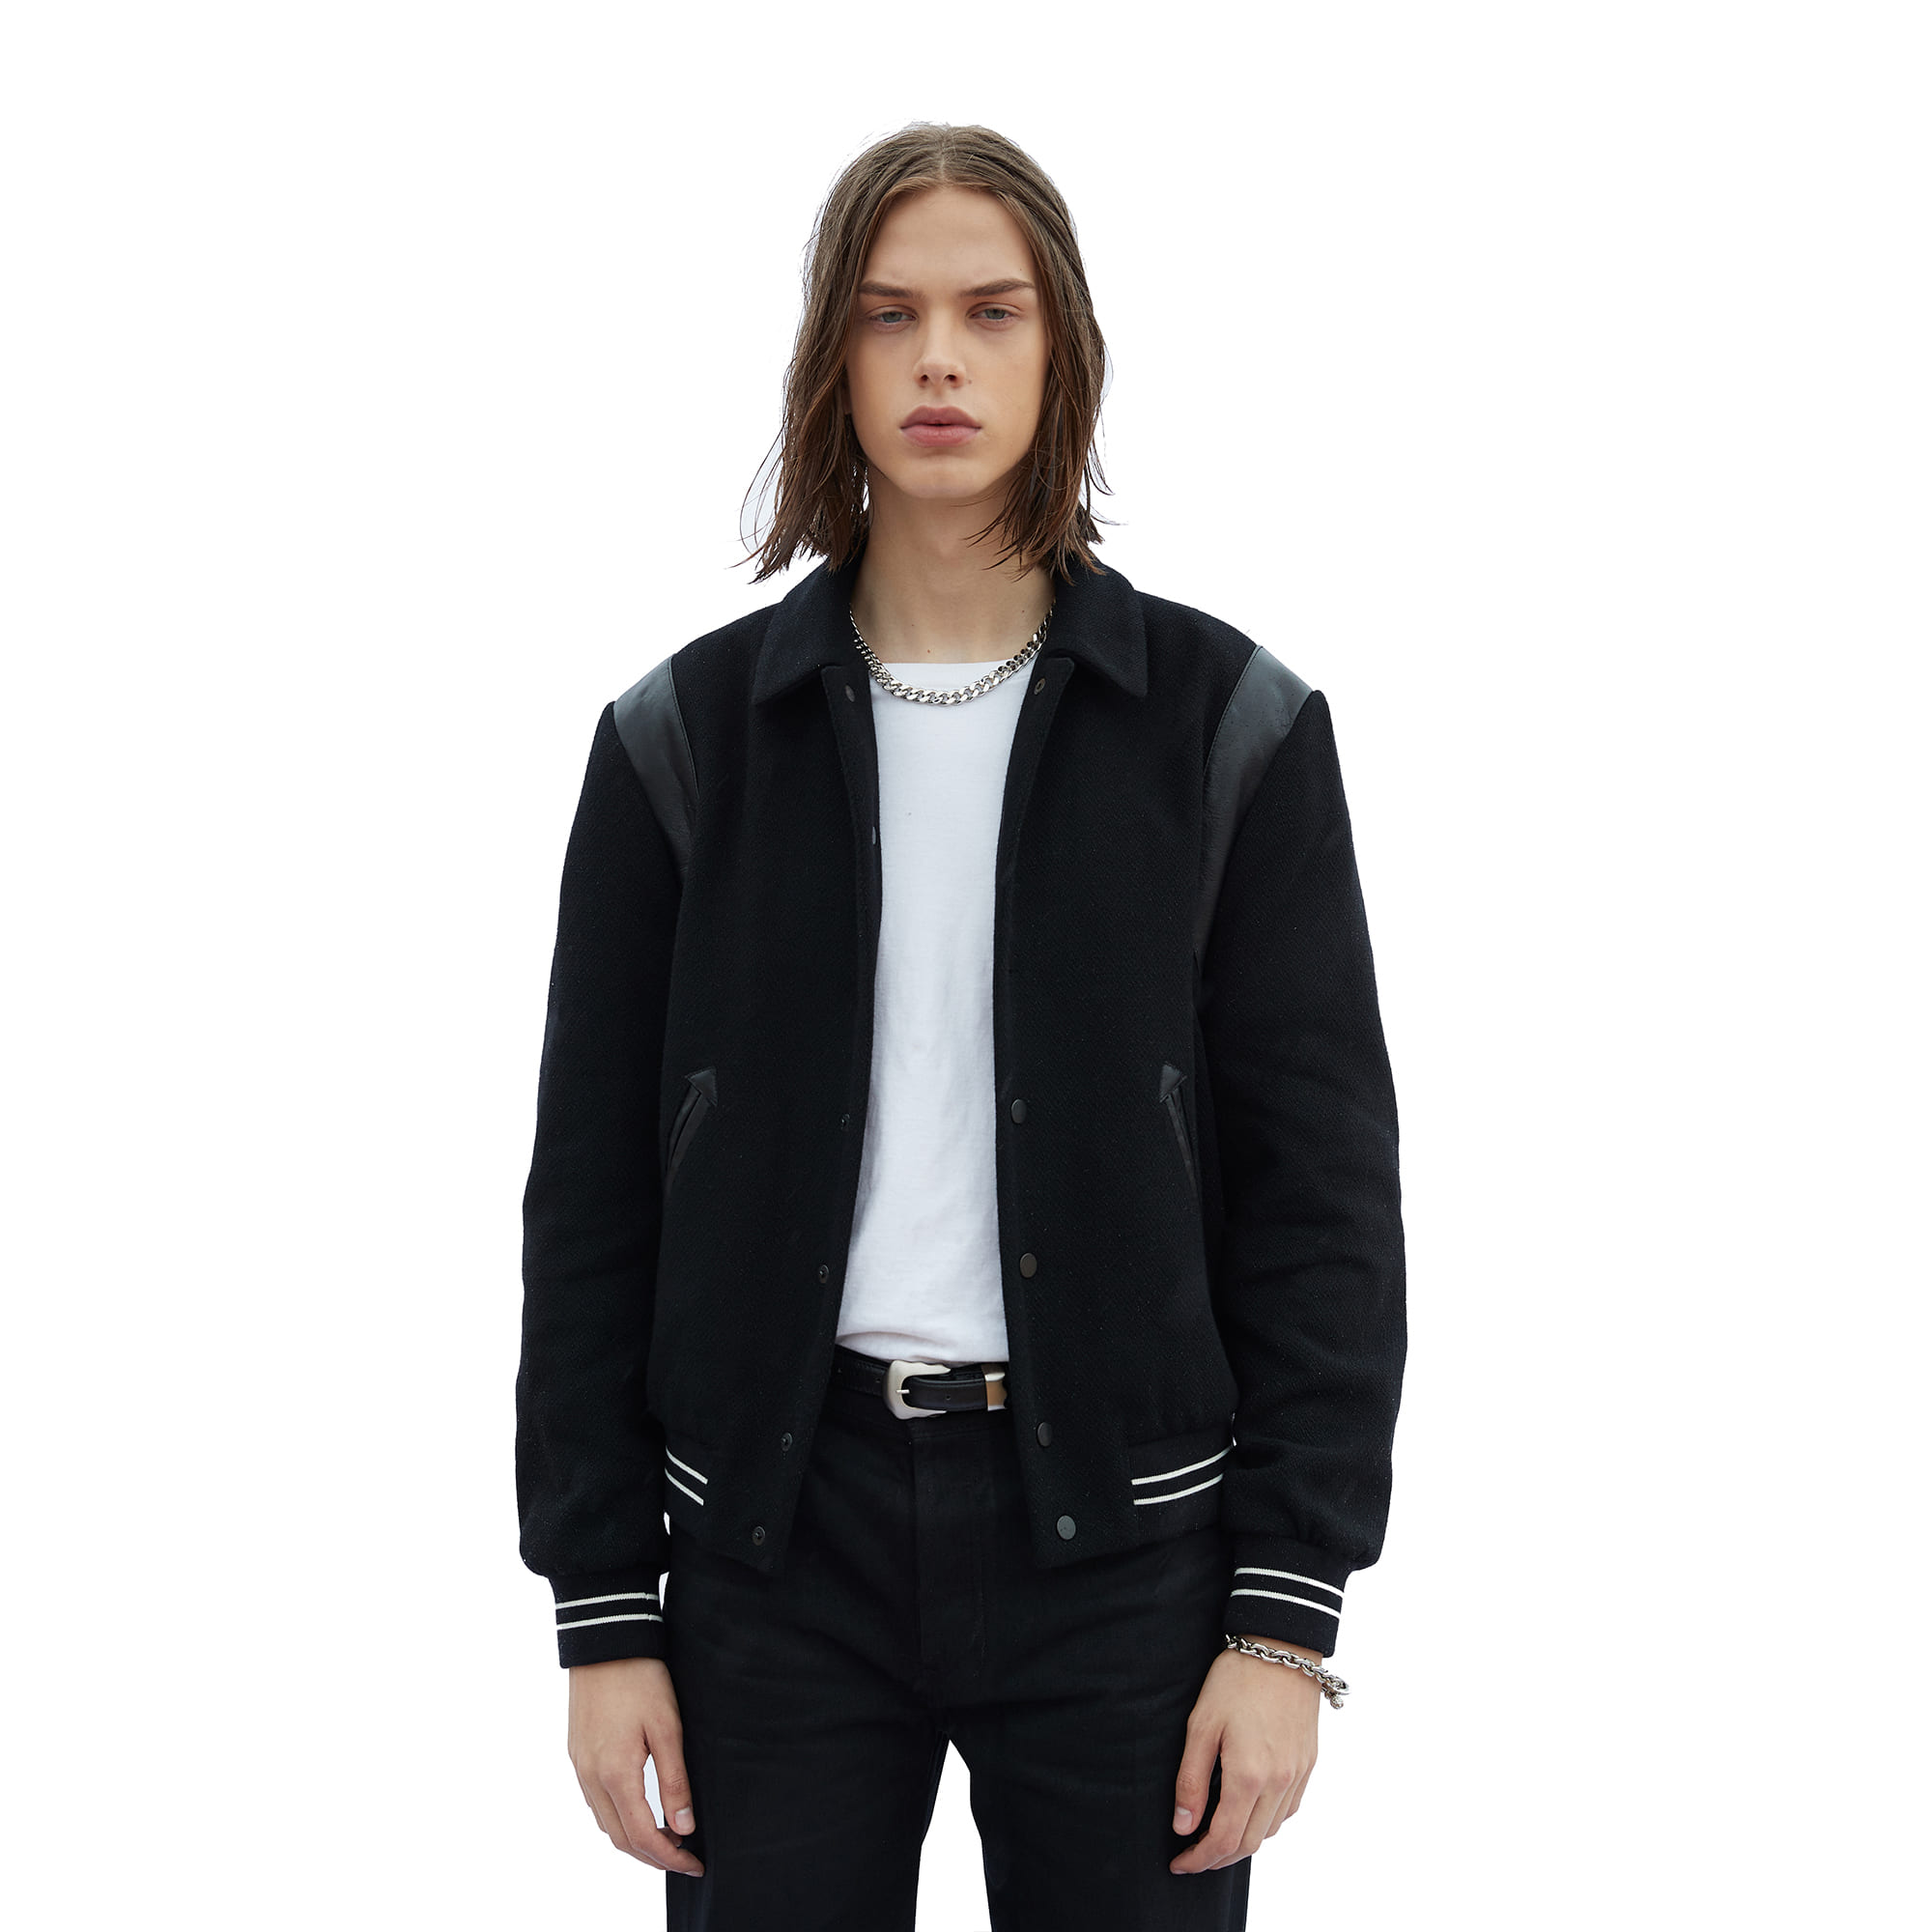 -[SAVAGE] Varsity Jacket - Black